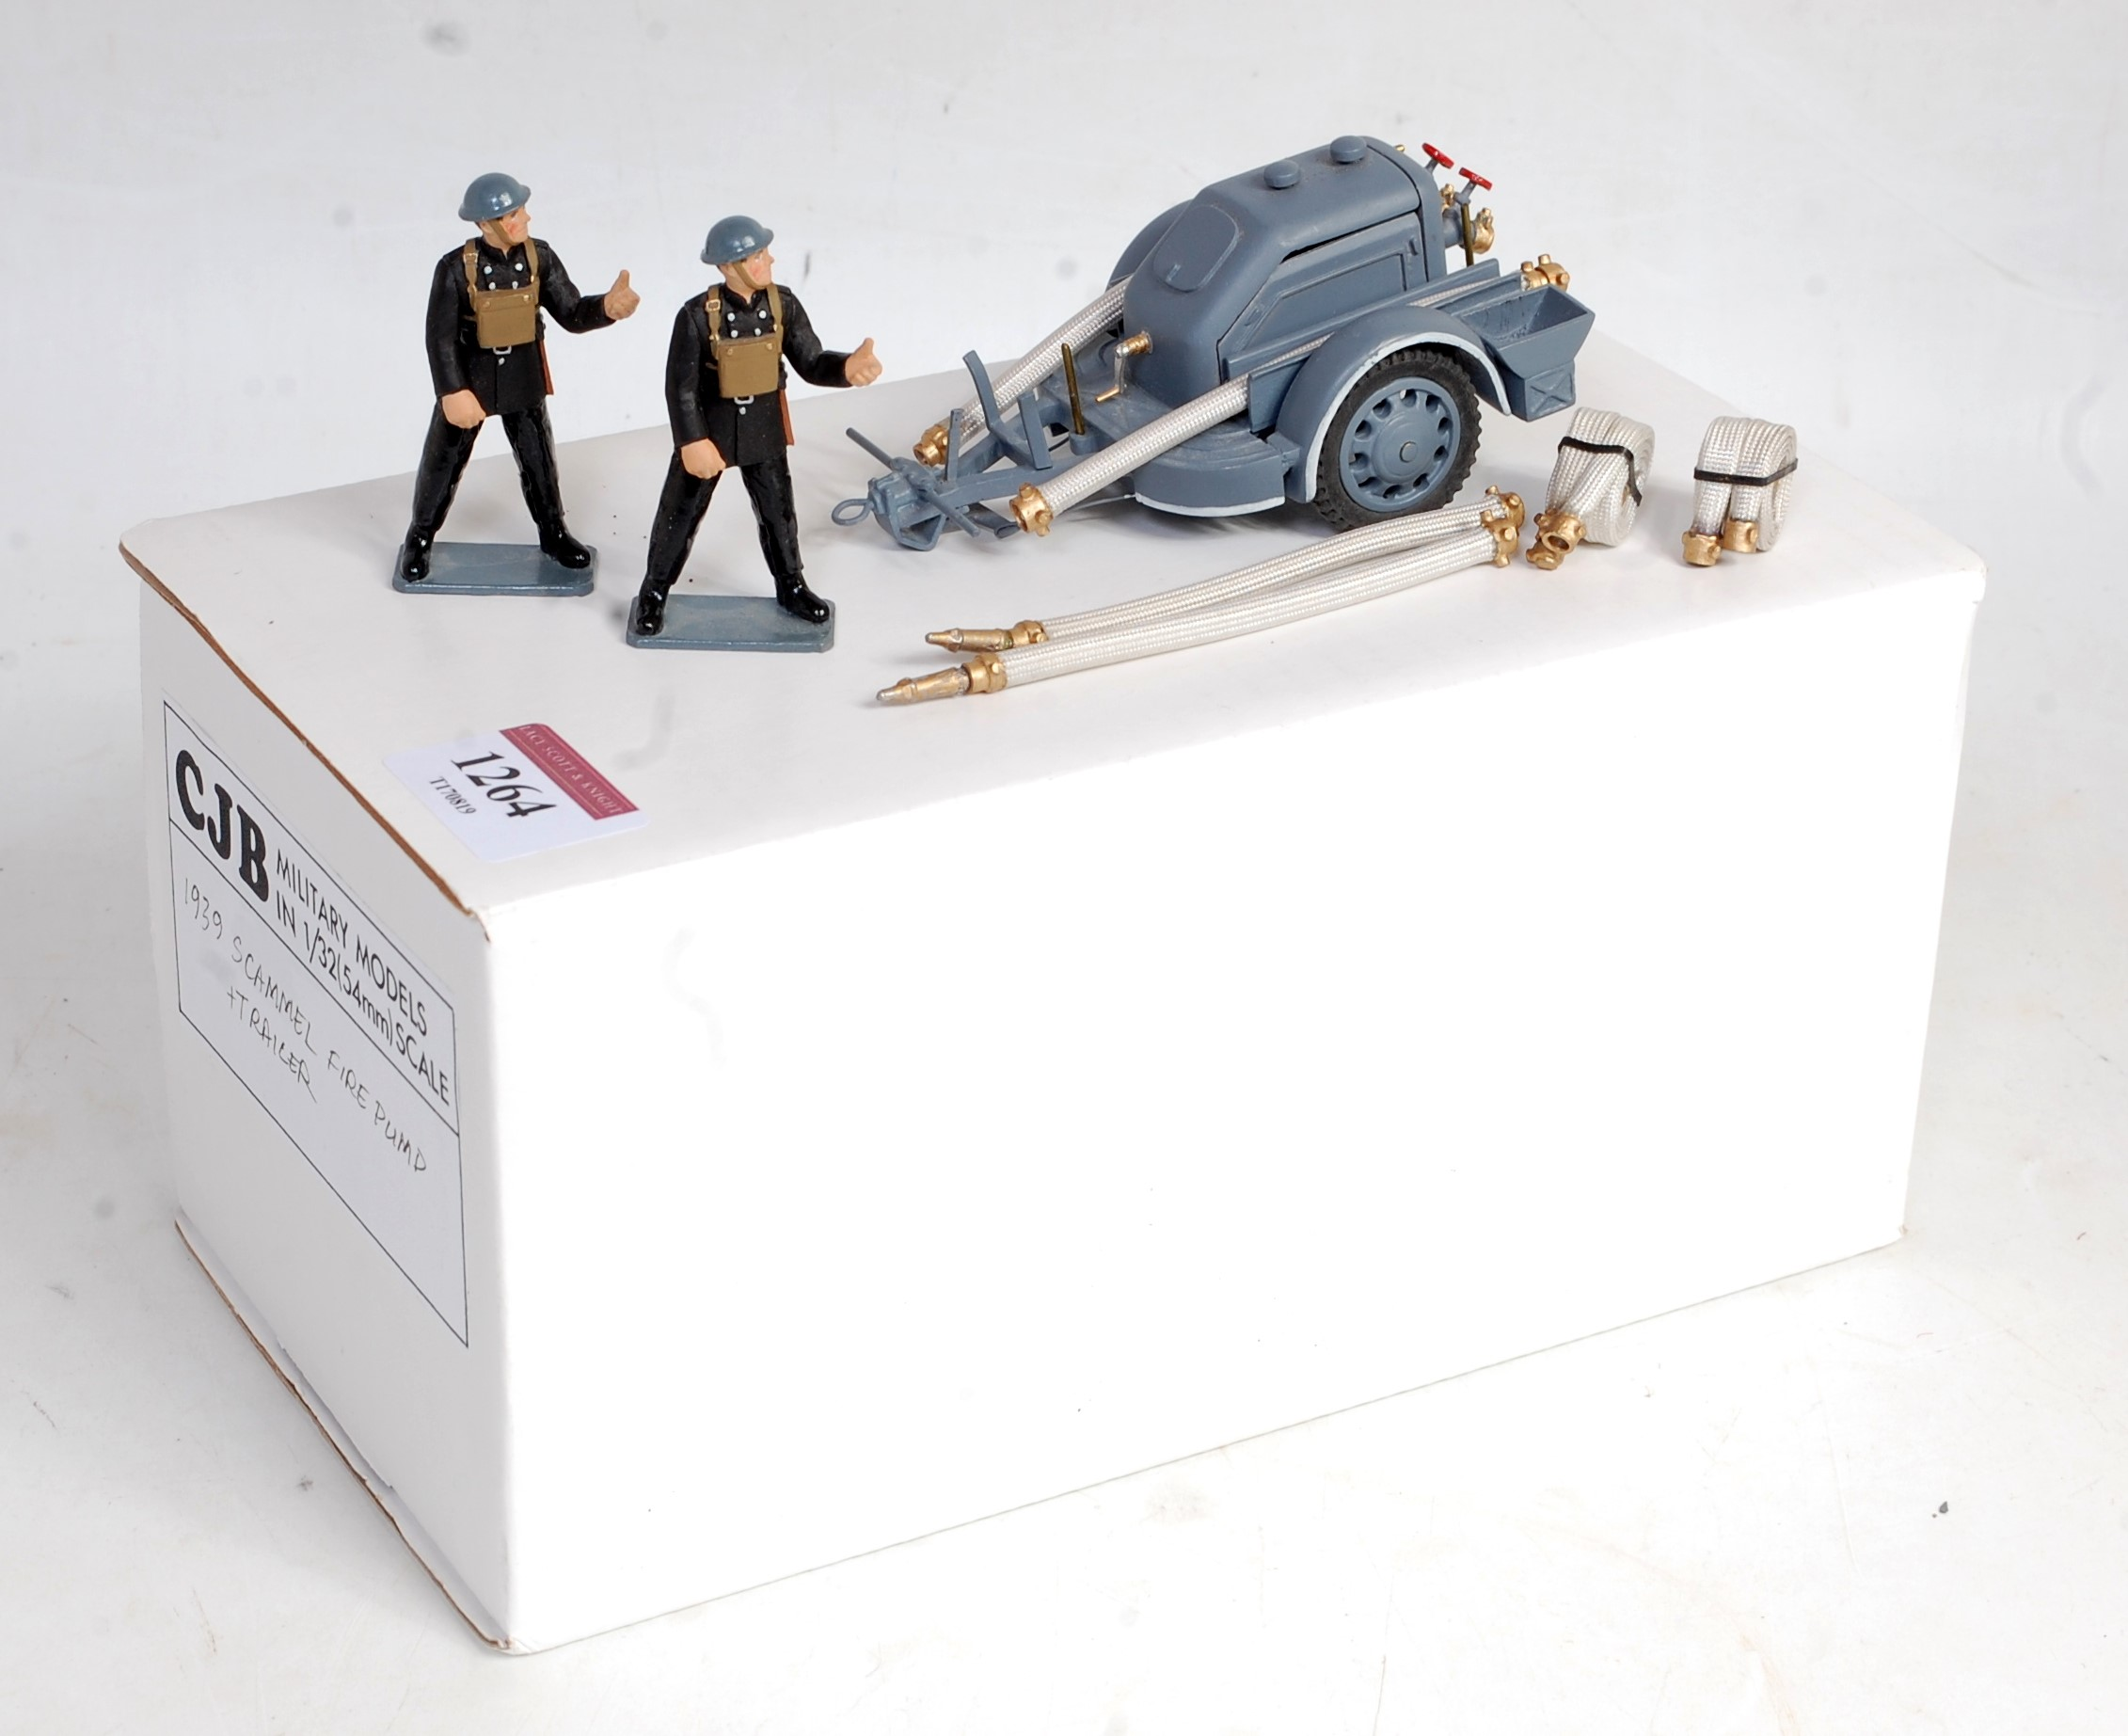 A CJB Military Models 1:32 scale white metal and resin model of a 1939 Scammell fire pump and